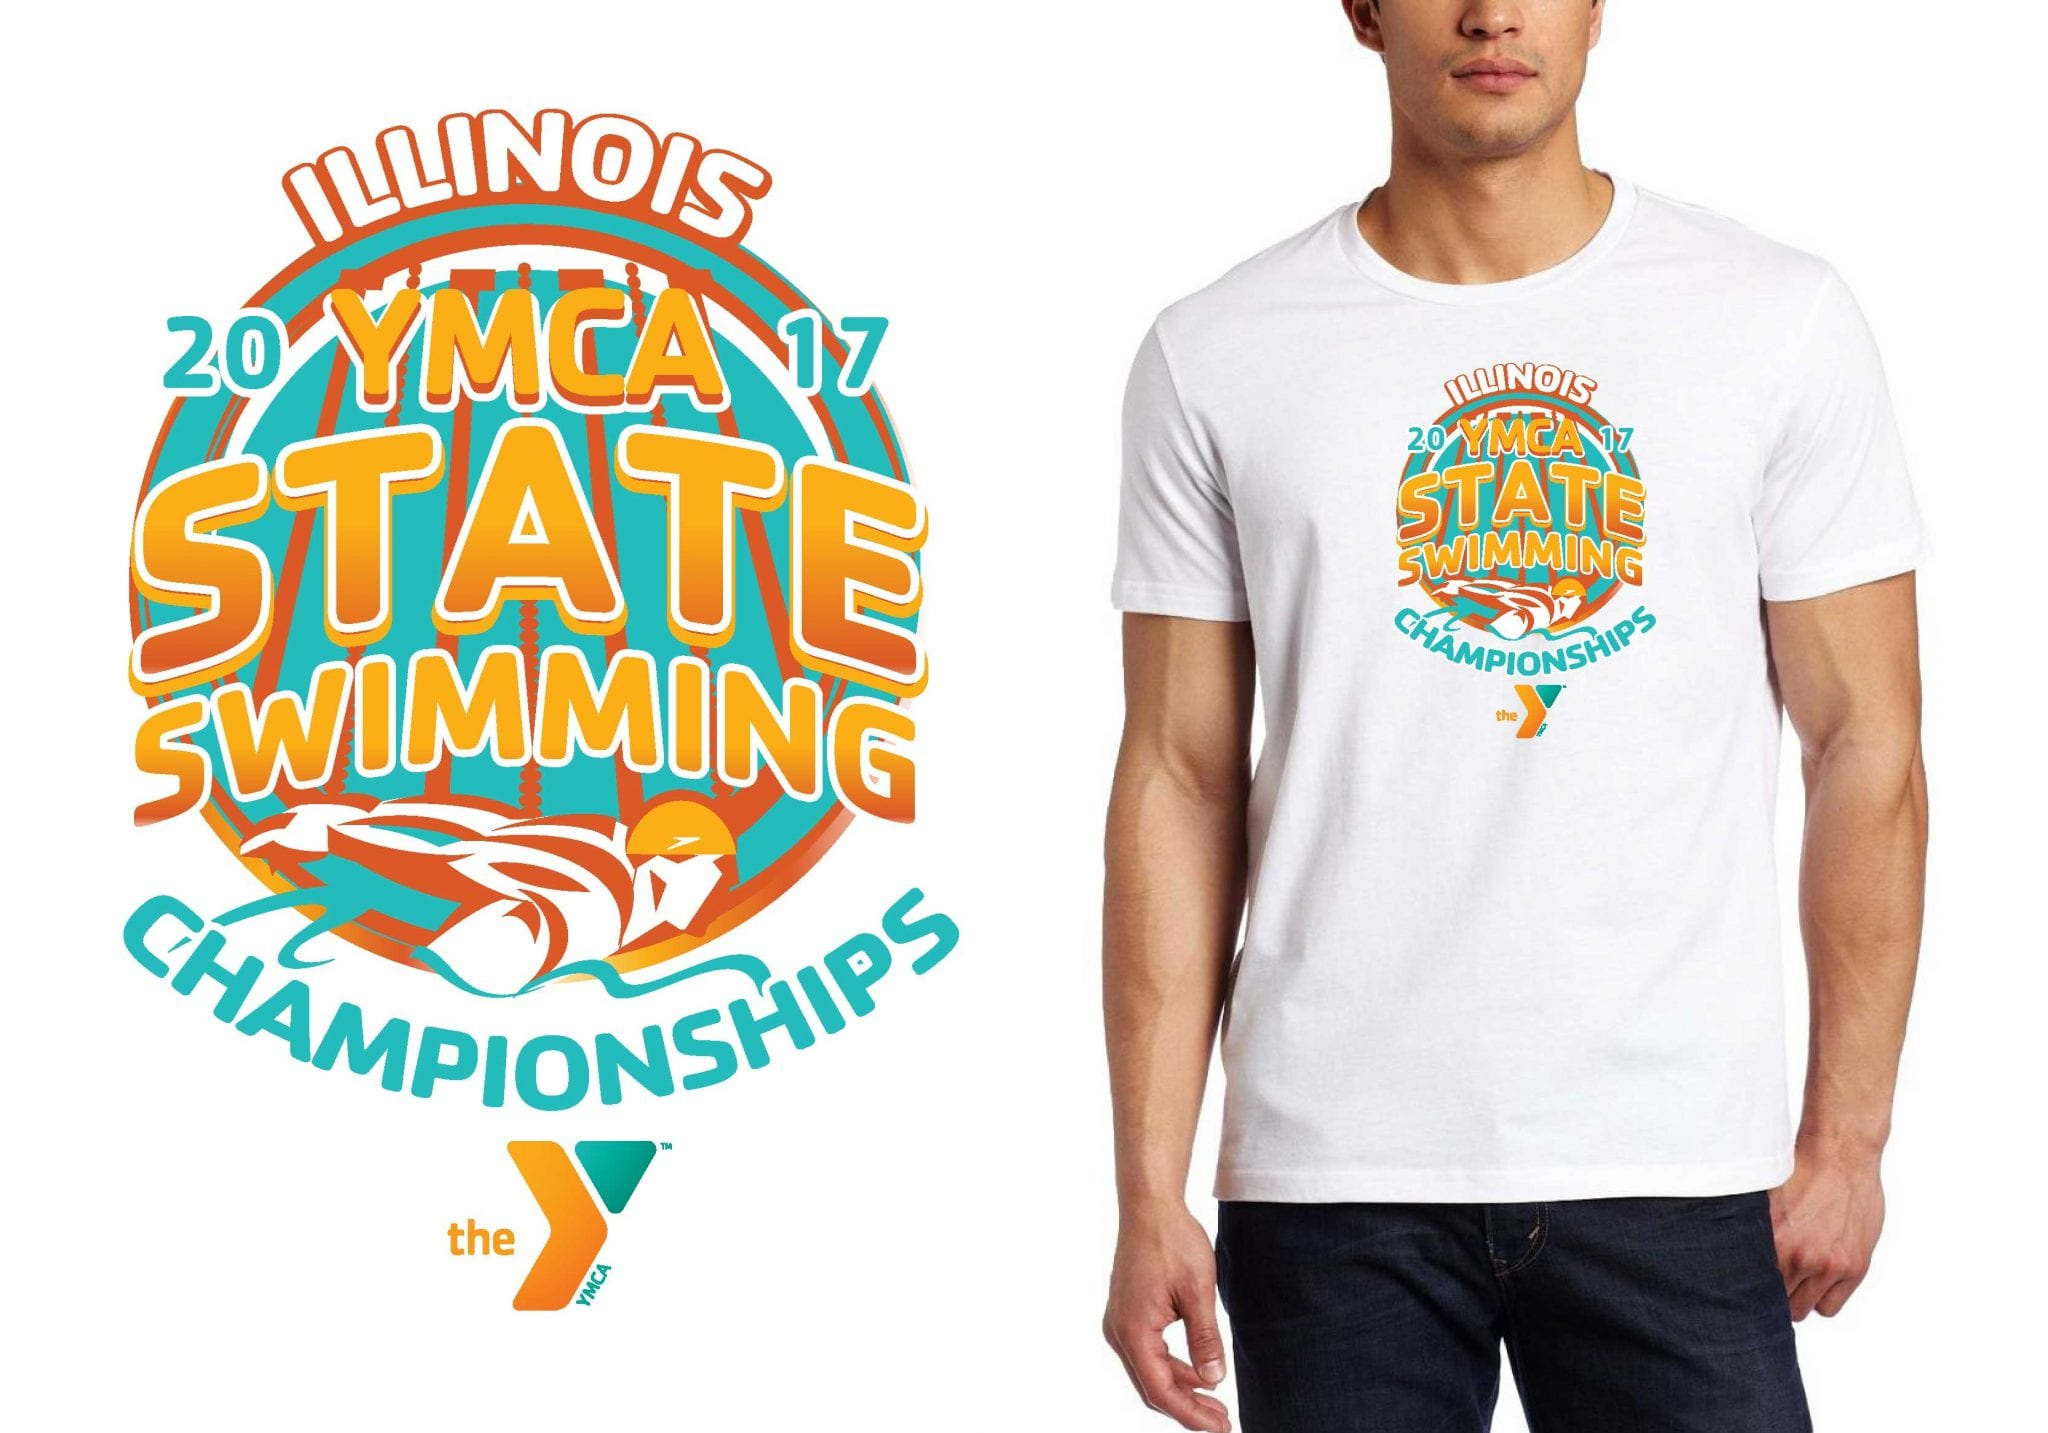 LOGO for Illinois-YMCA-State-Swimming-Championships T-SHIRT UrArtStudio